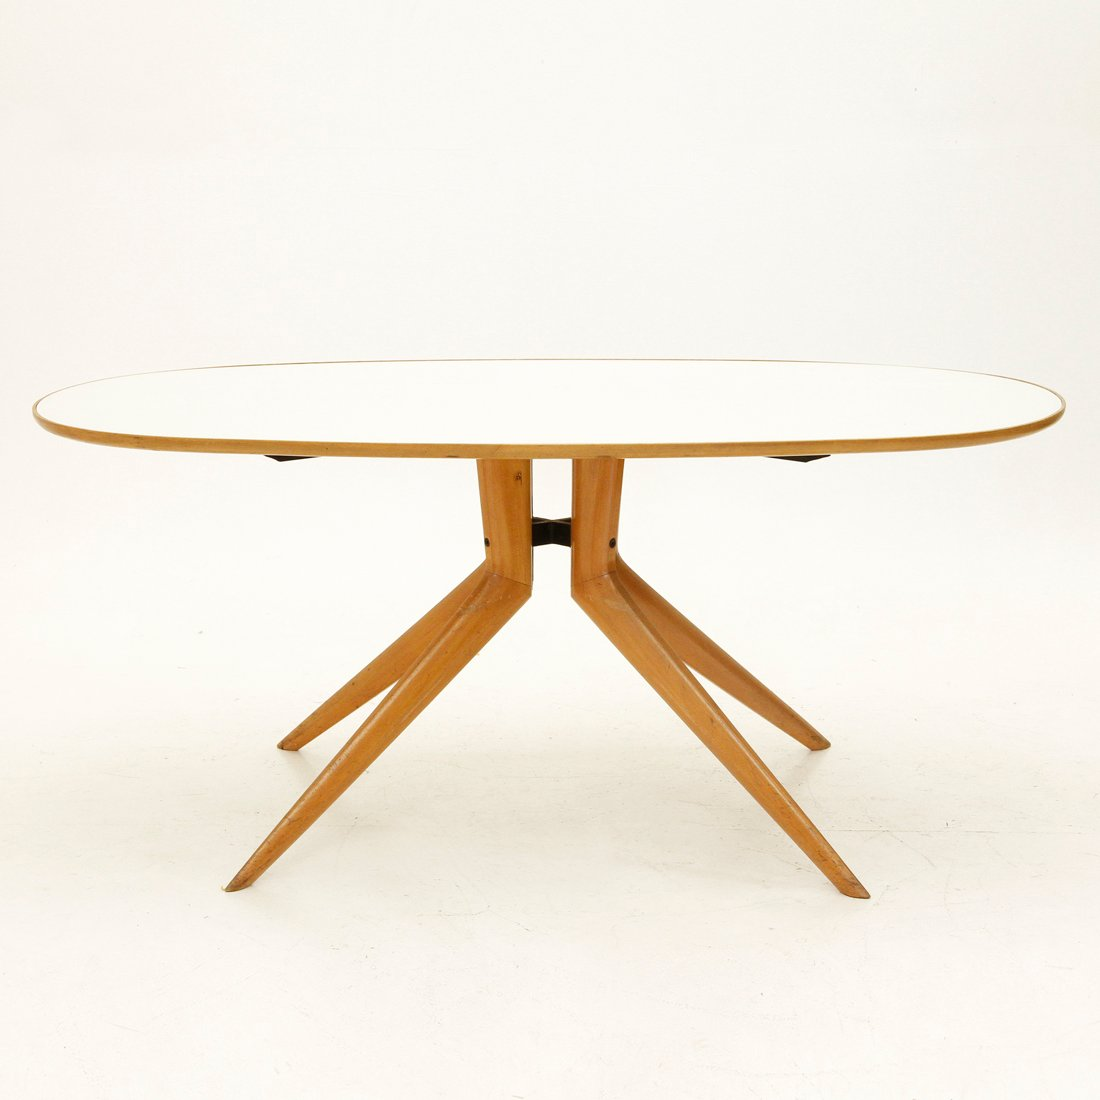 Oval Wooden Dining Table With Glass Top 1950s For Sale At Pamono